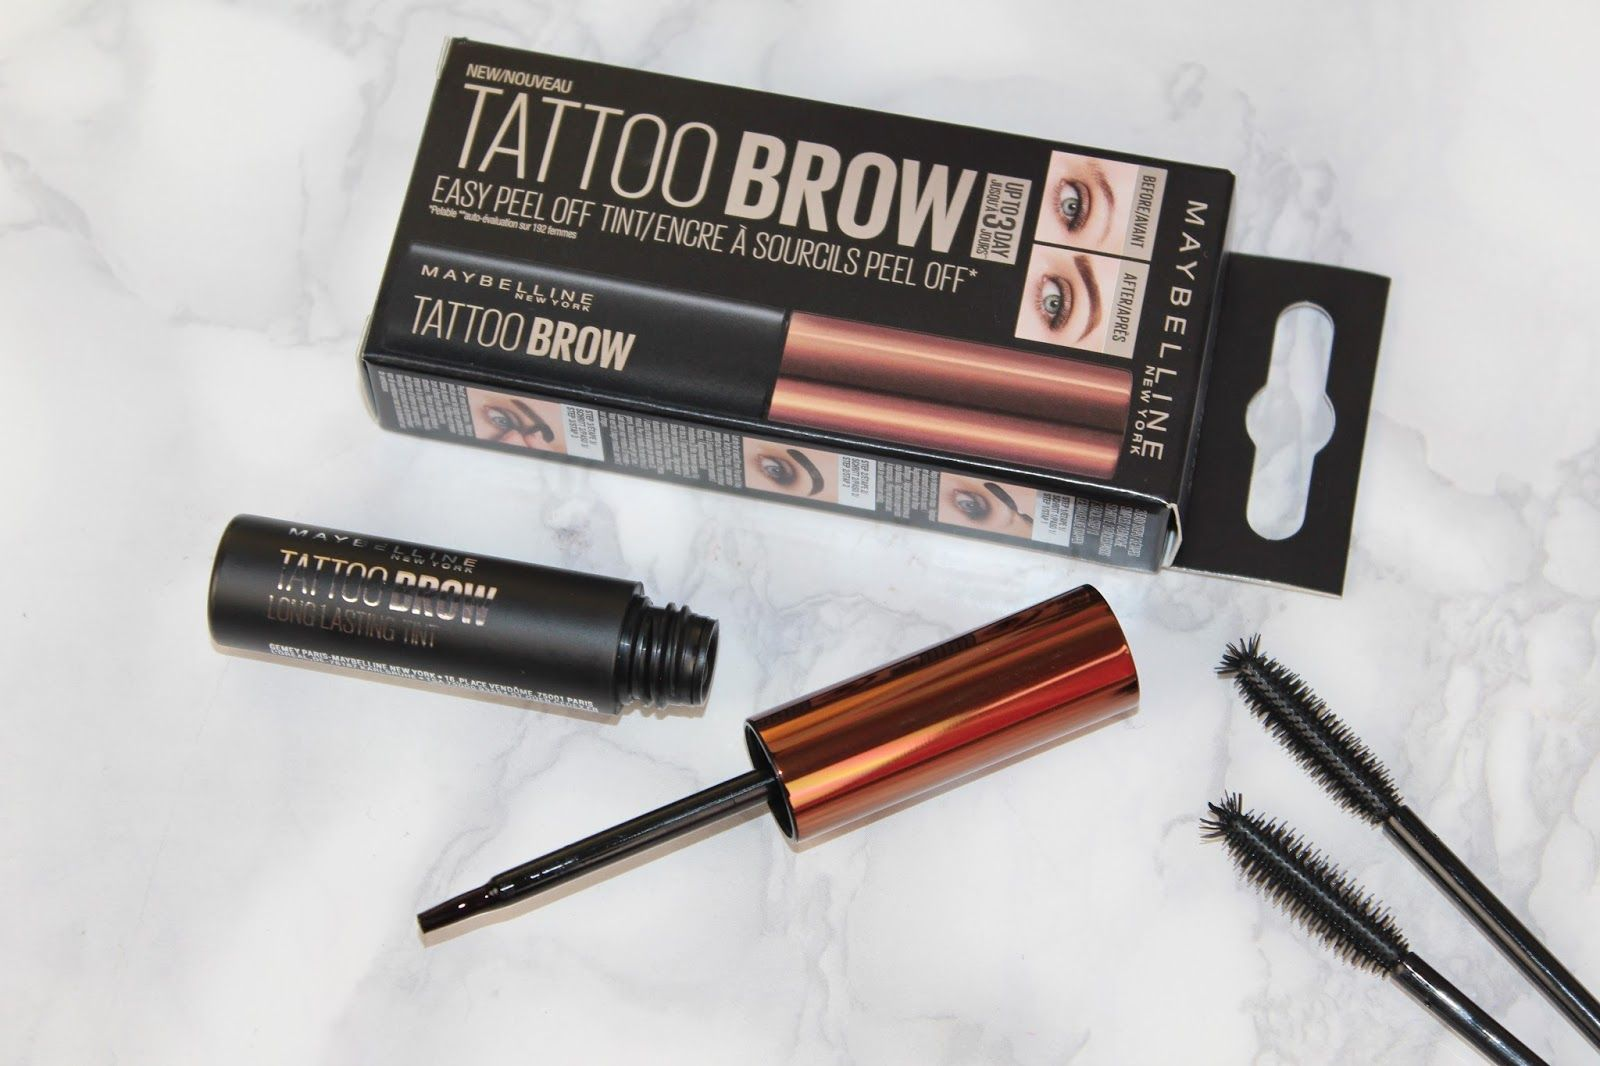 Maybelline tattoo brow review and photos maybelline